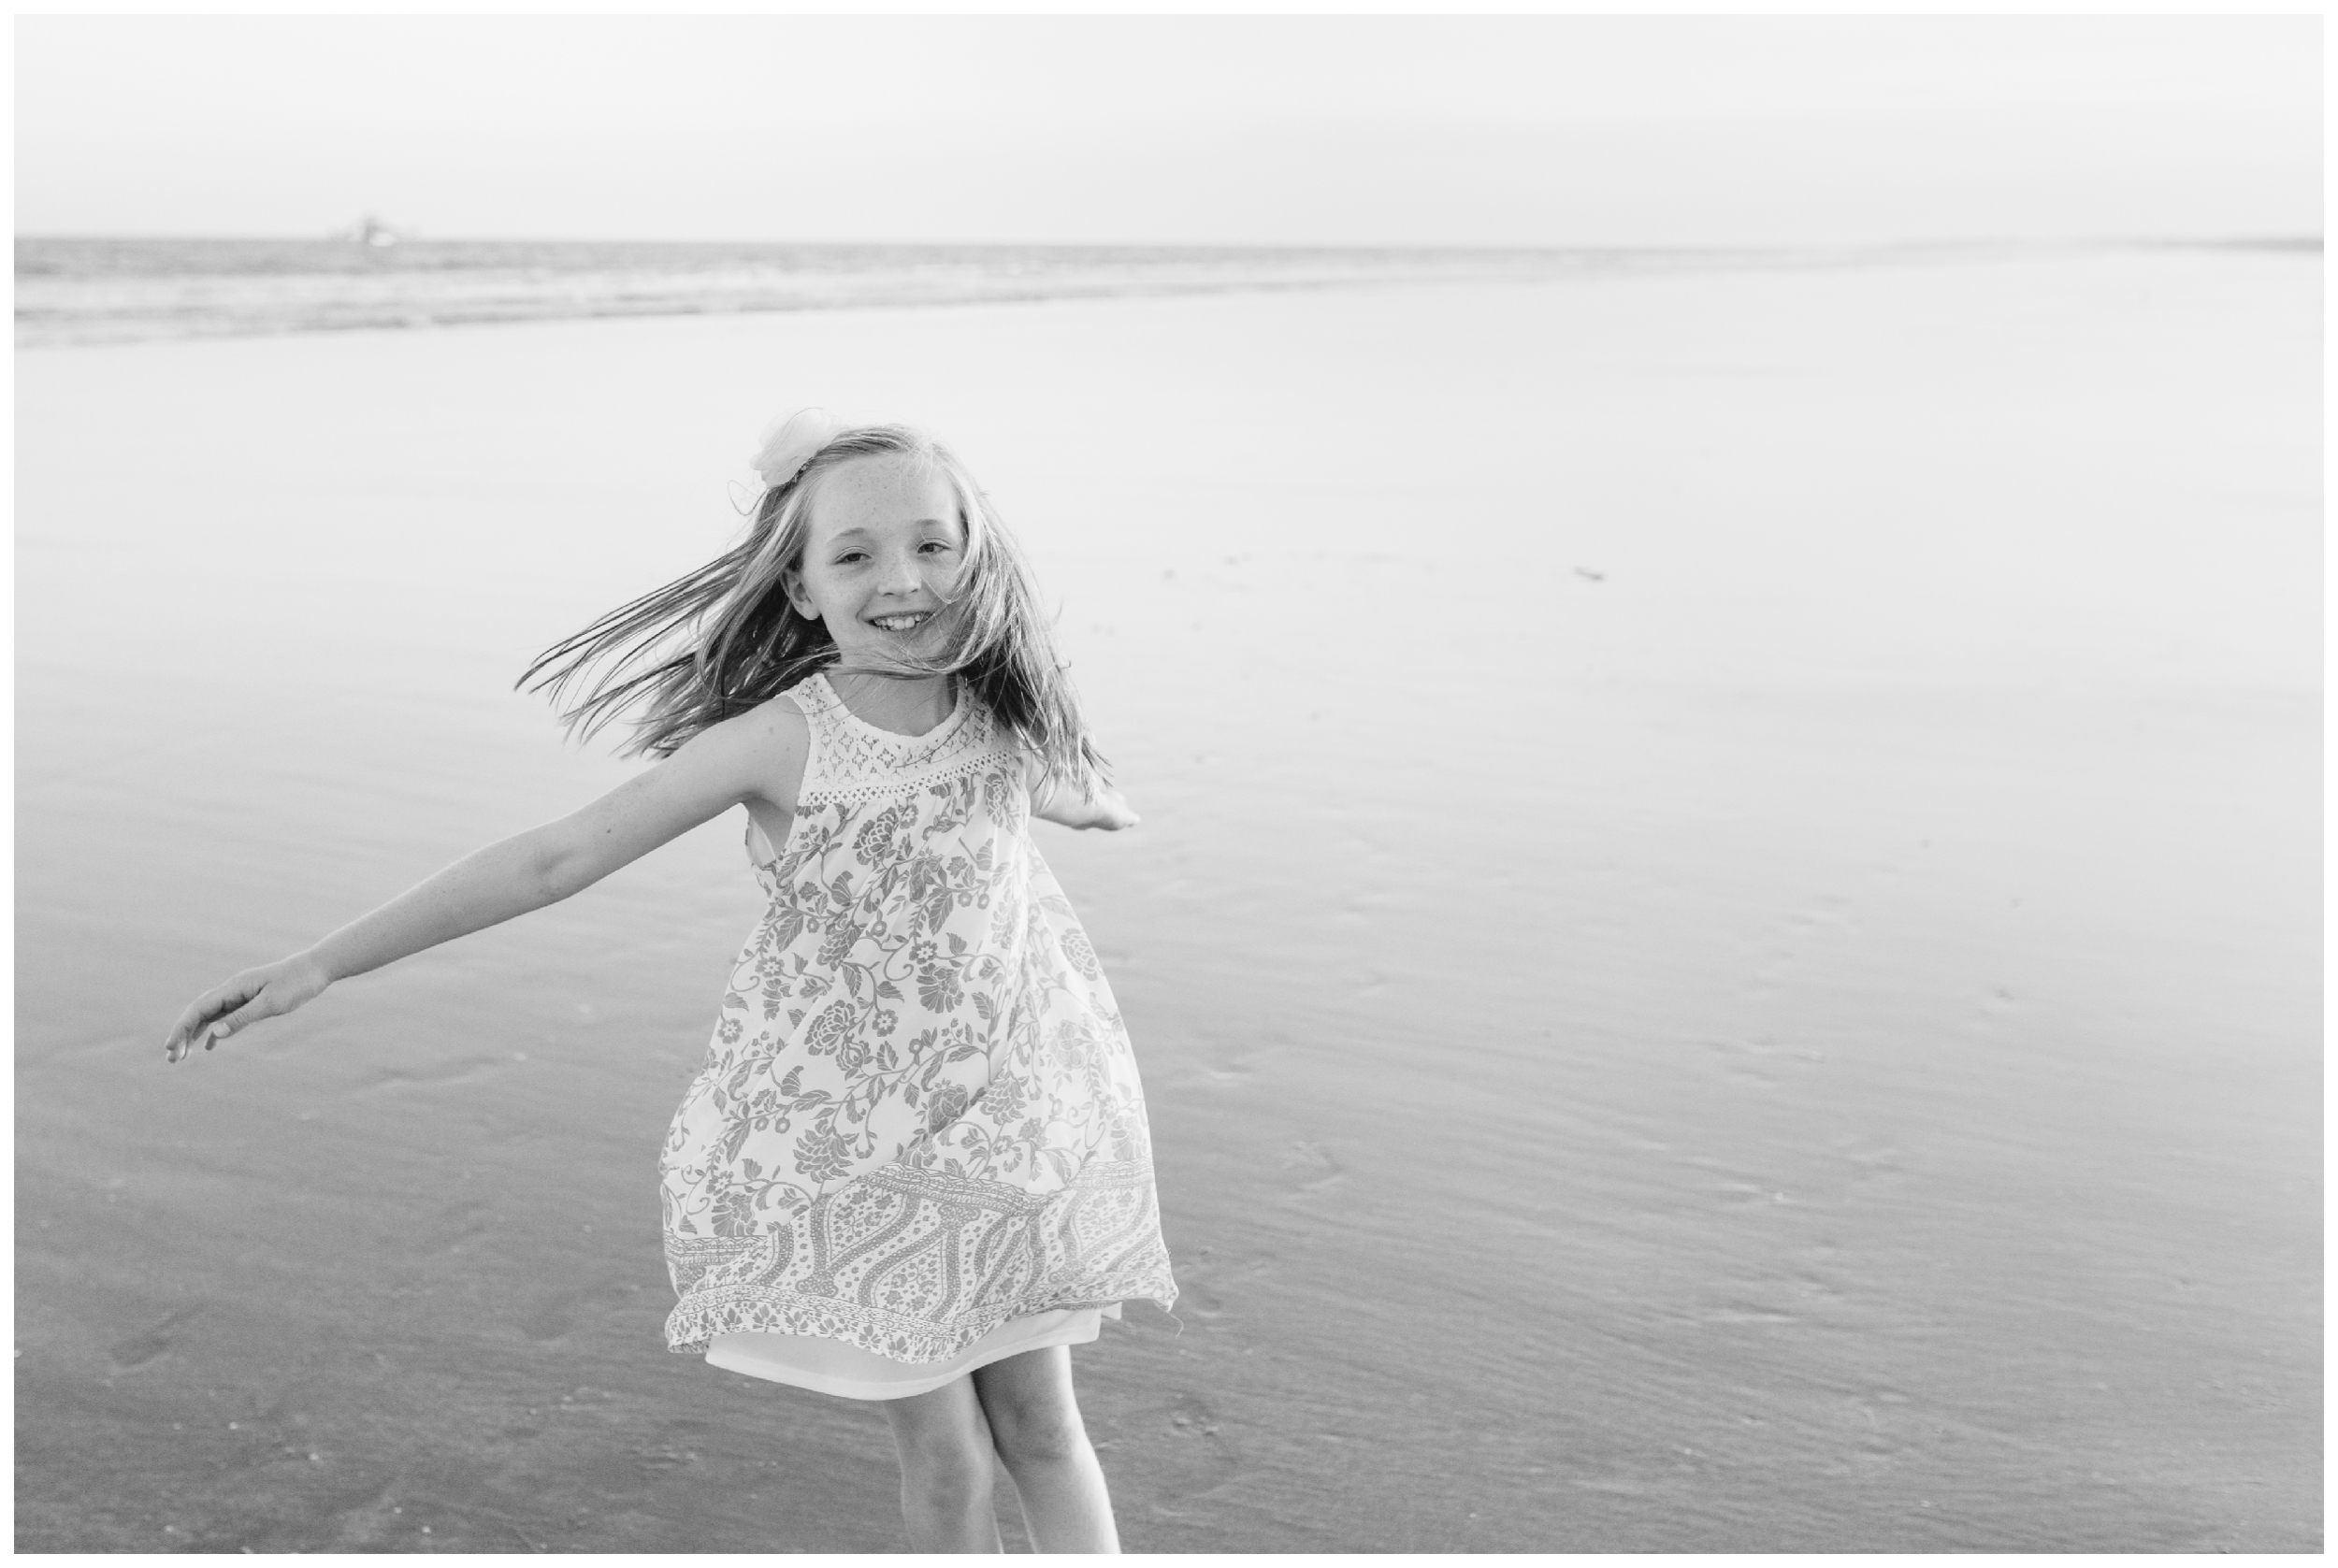 laughing sister twirling in the sand